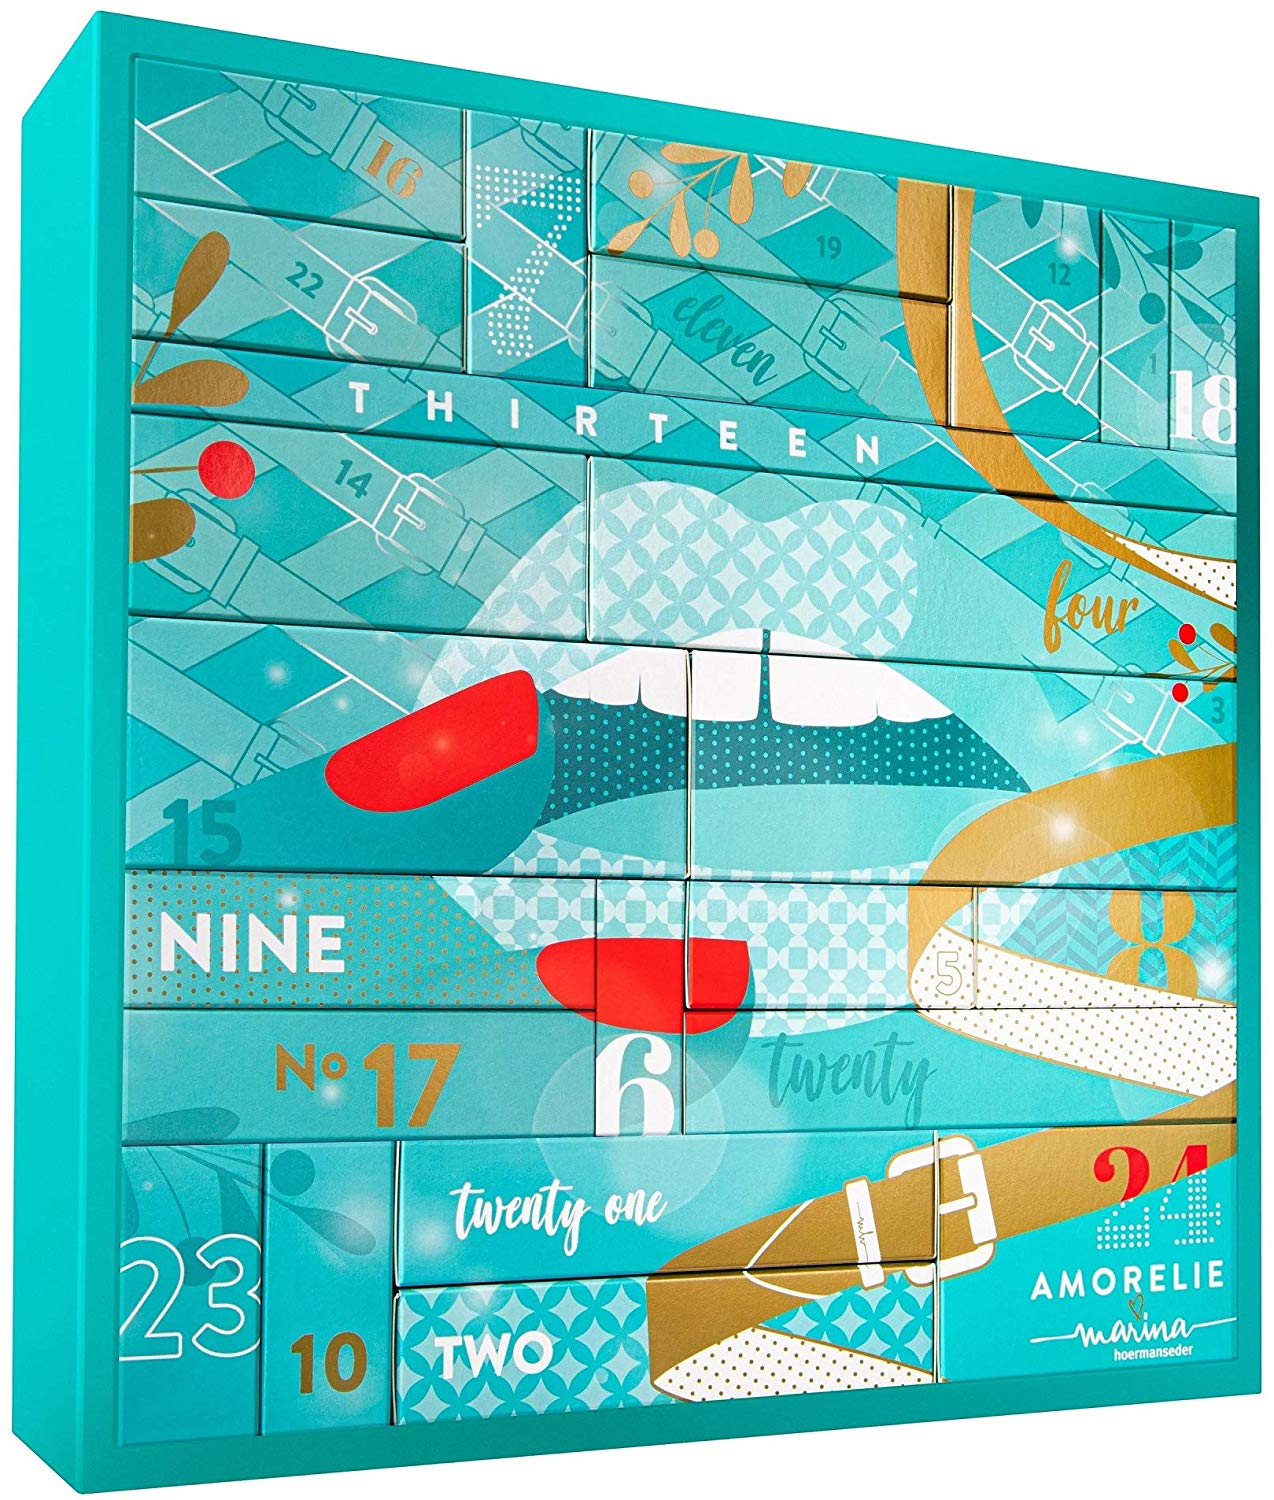 Amorelie Adventskalender amazon